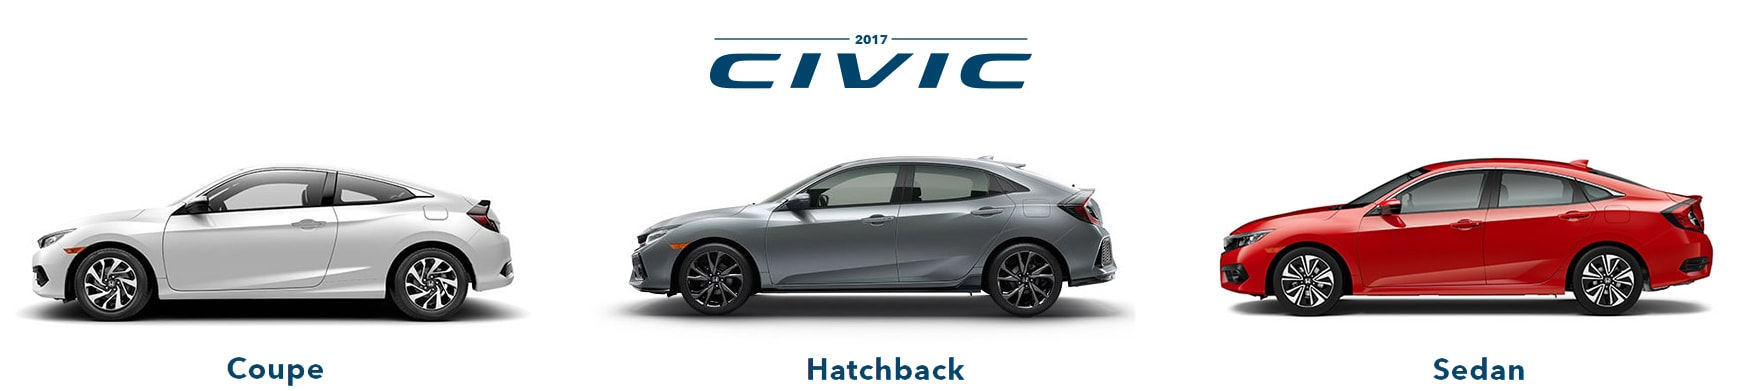 2017 honda civic trim levels autonation honda fremont for Honda fremont auto mall